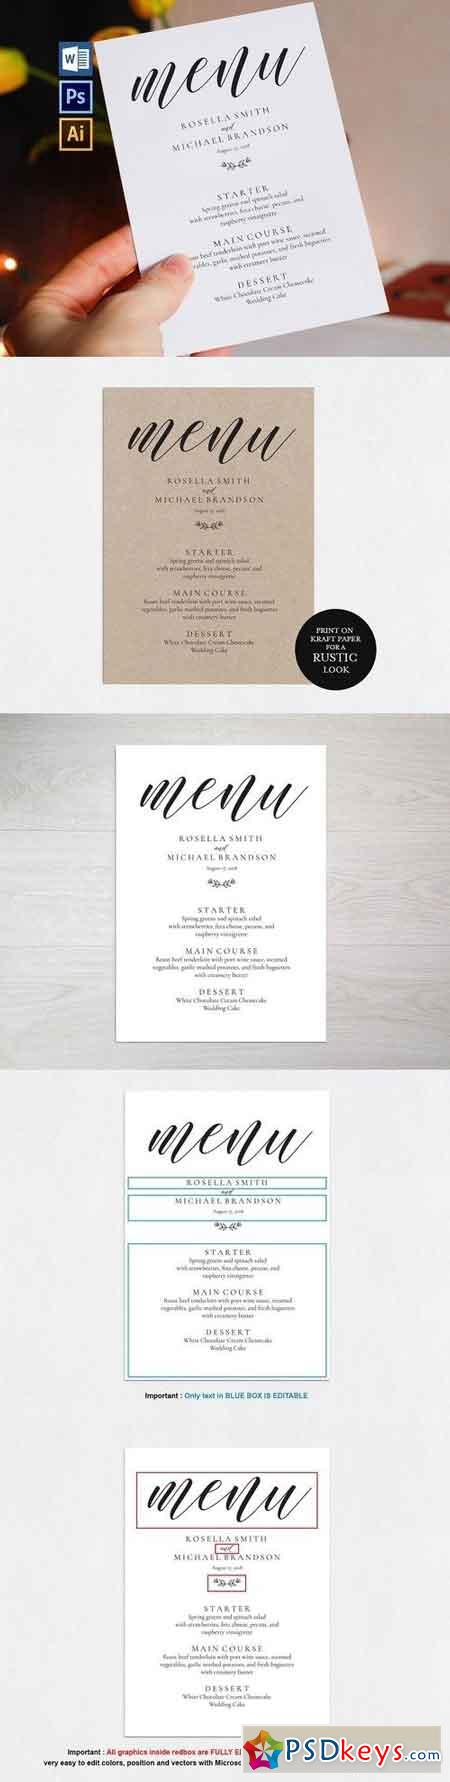 Wedding Menu Template Wpc88 1466065